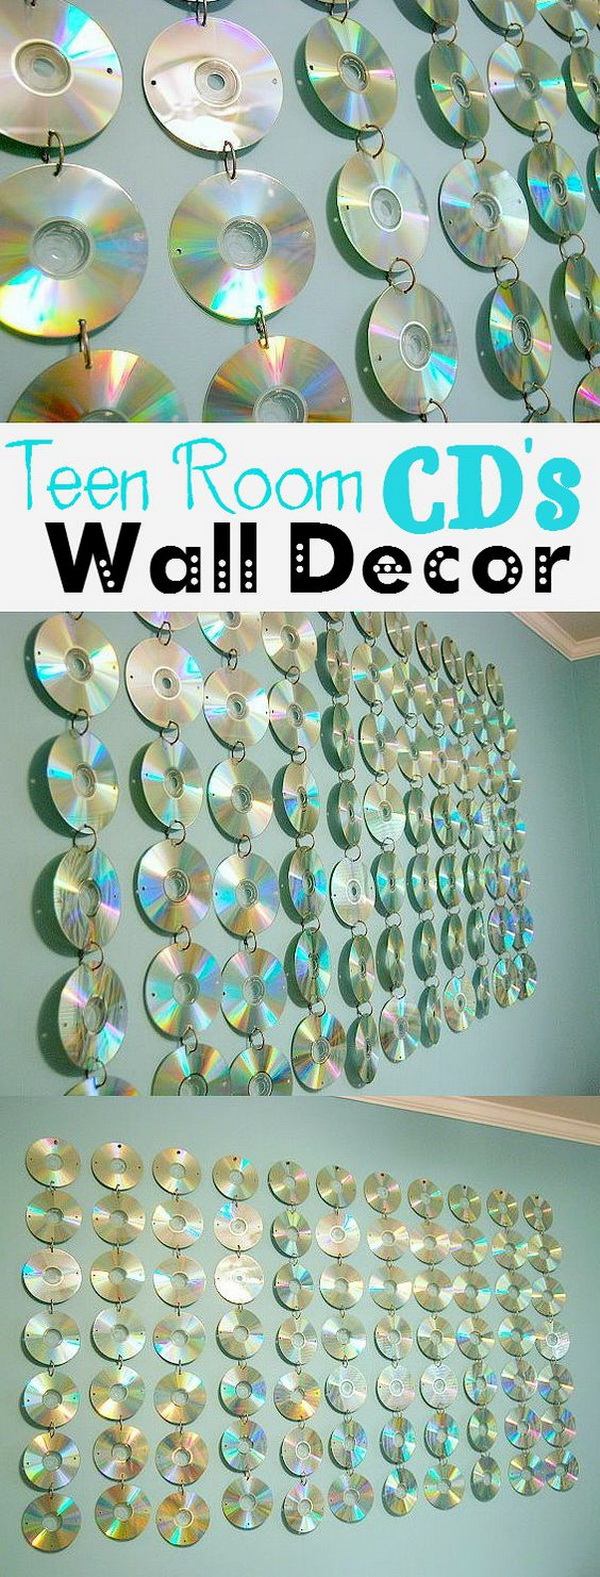 Brilliant Diy Ideas To Recycle Old Cds For Creative Juice